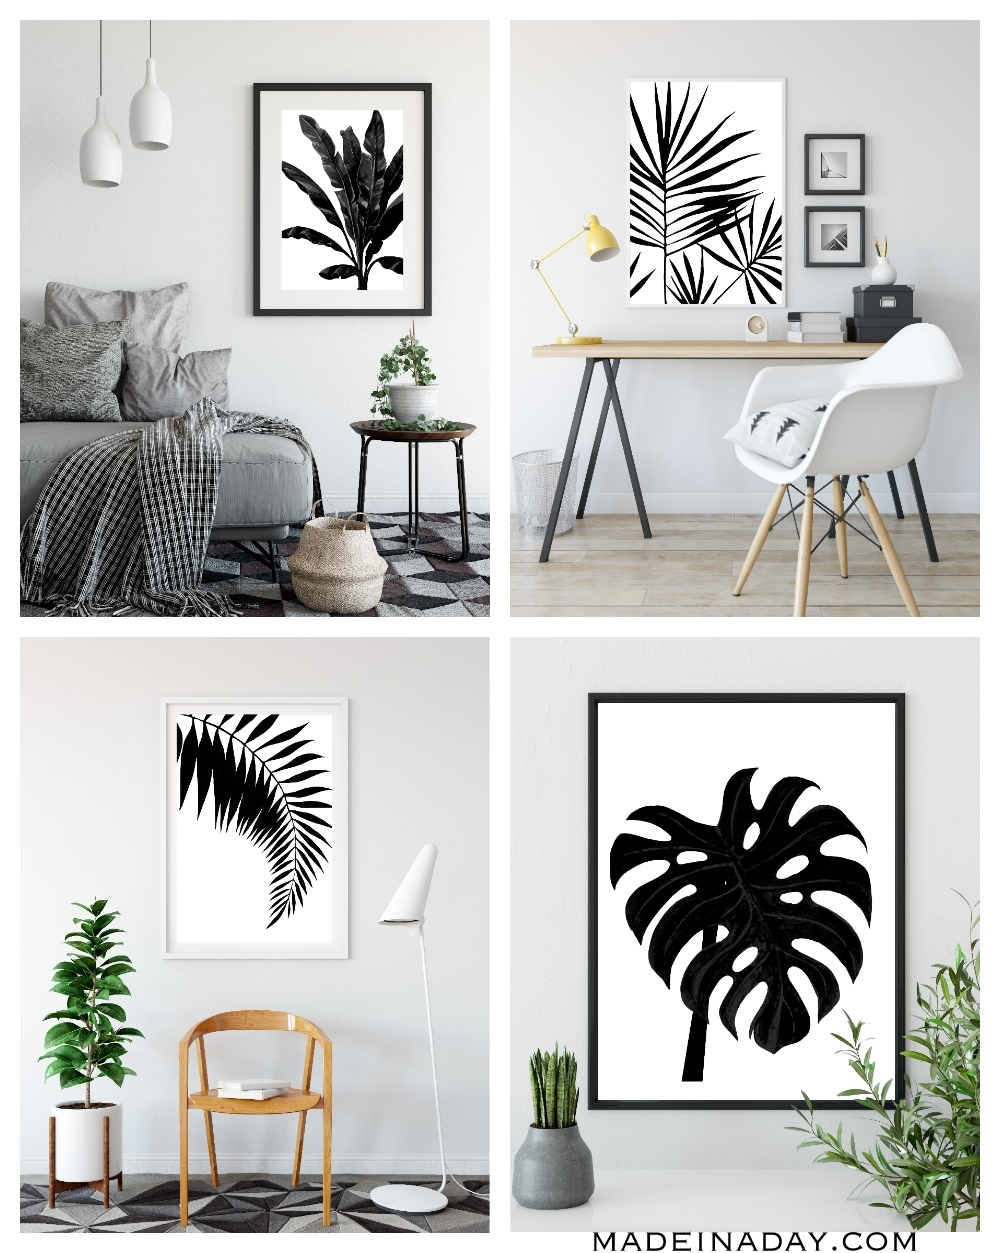 Black & White Tropical Palm Leaf Wall Art Printables • Made In A Day intended for Black and White Wall Art (Image 6 of 20)